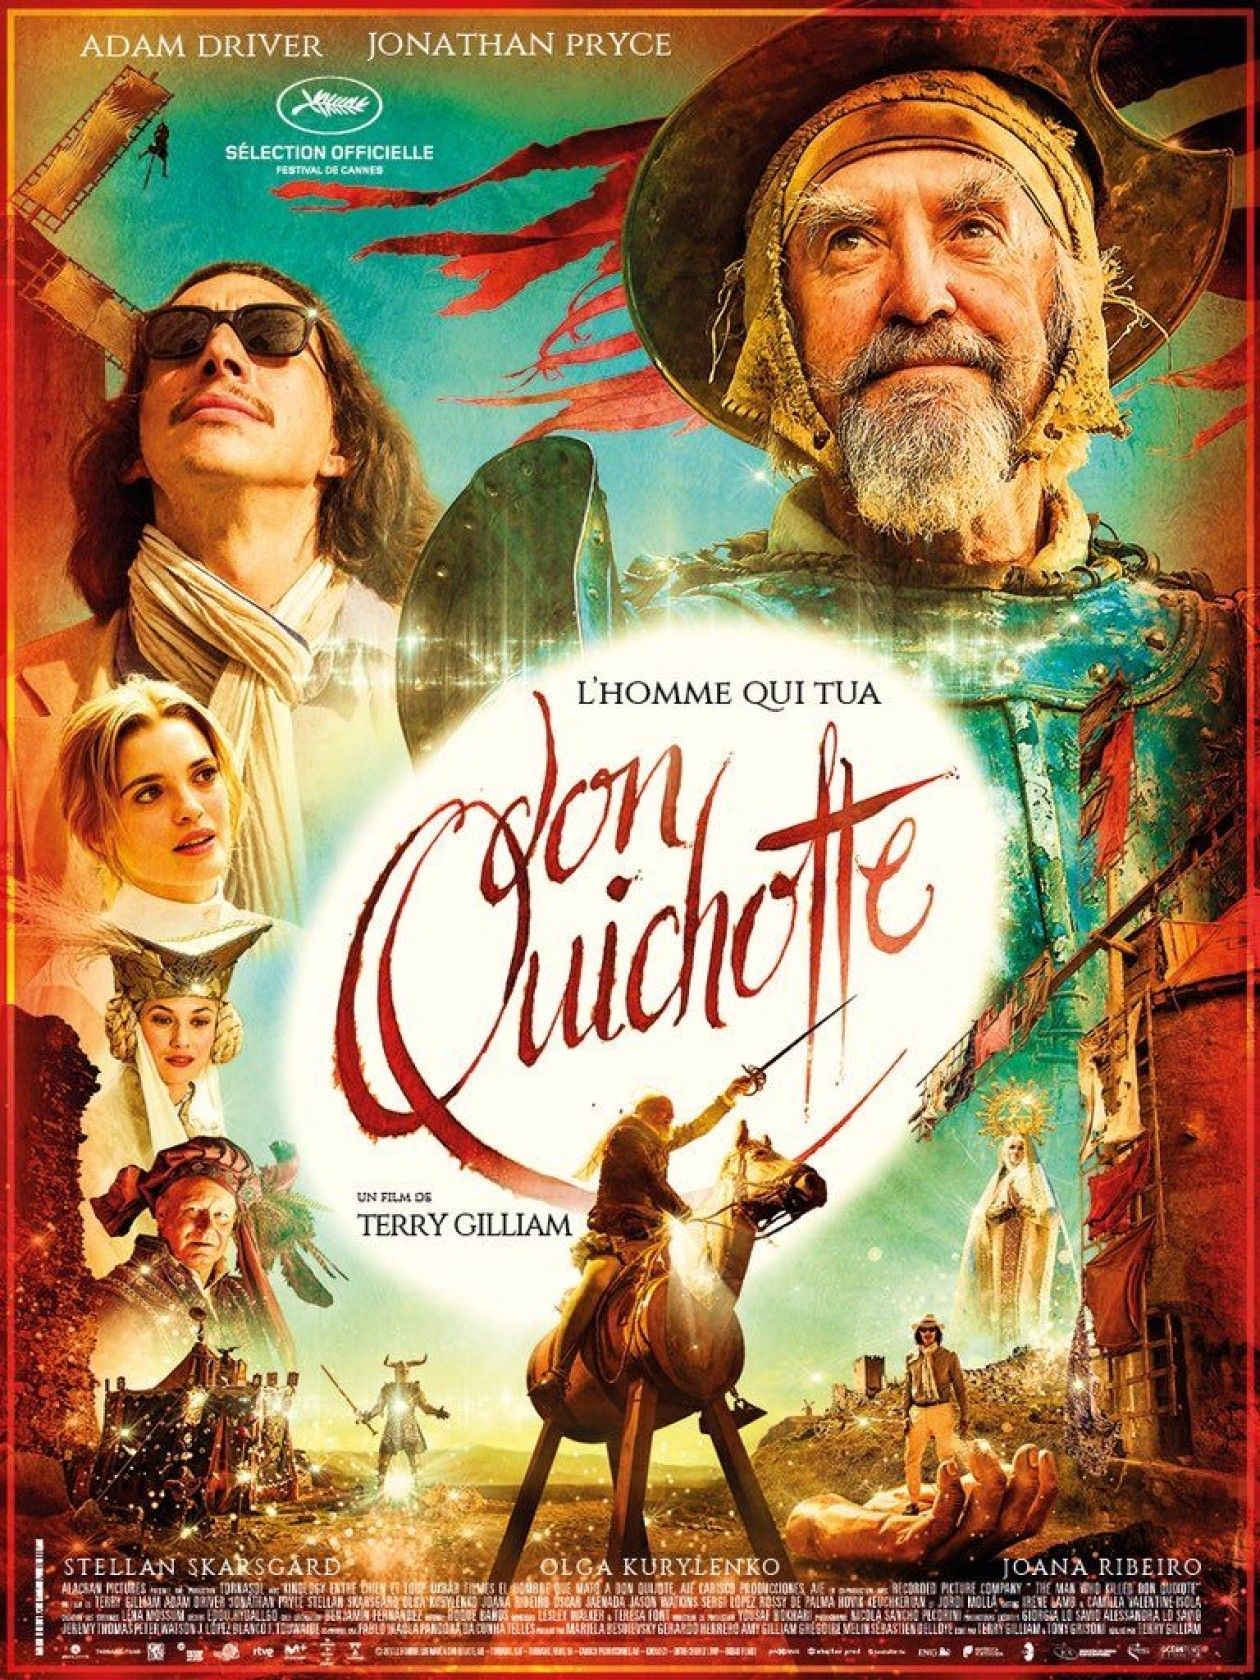 Joana Ribeiro actress | The Man Who Killed Don Quixote / L'Homme qui tua Don Quichotte | Terry Gilliam 2018 Movie Poster Affiche film